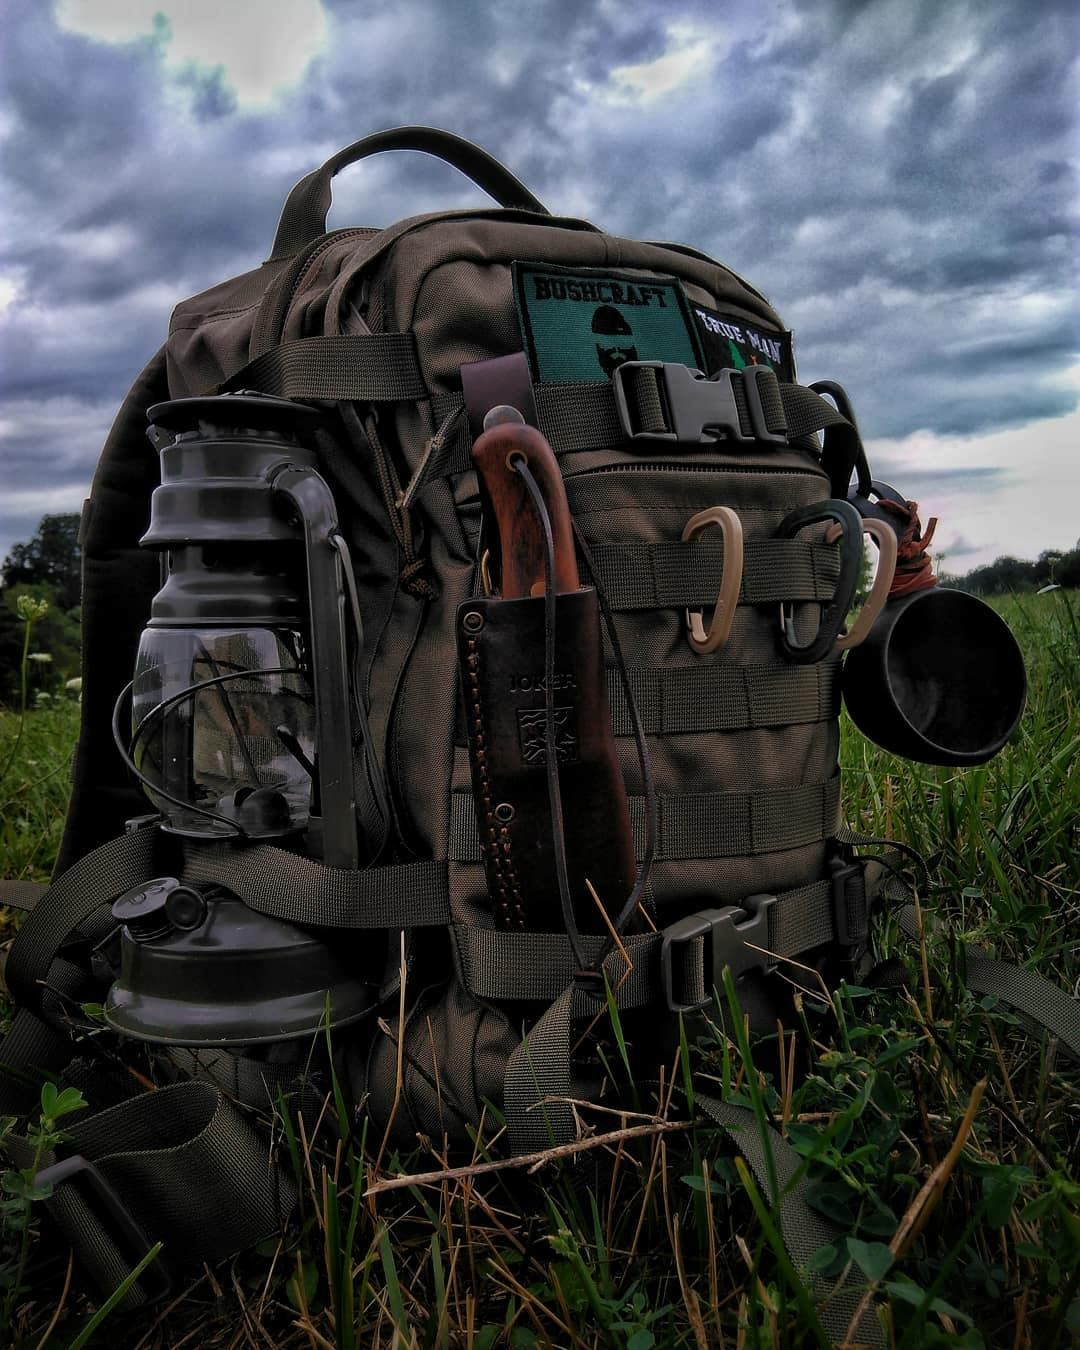 backpack loaded with gear